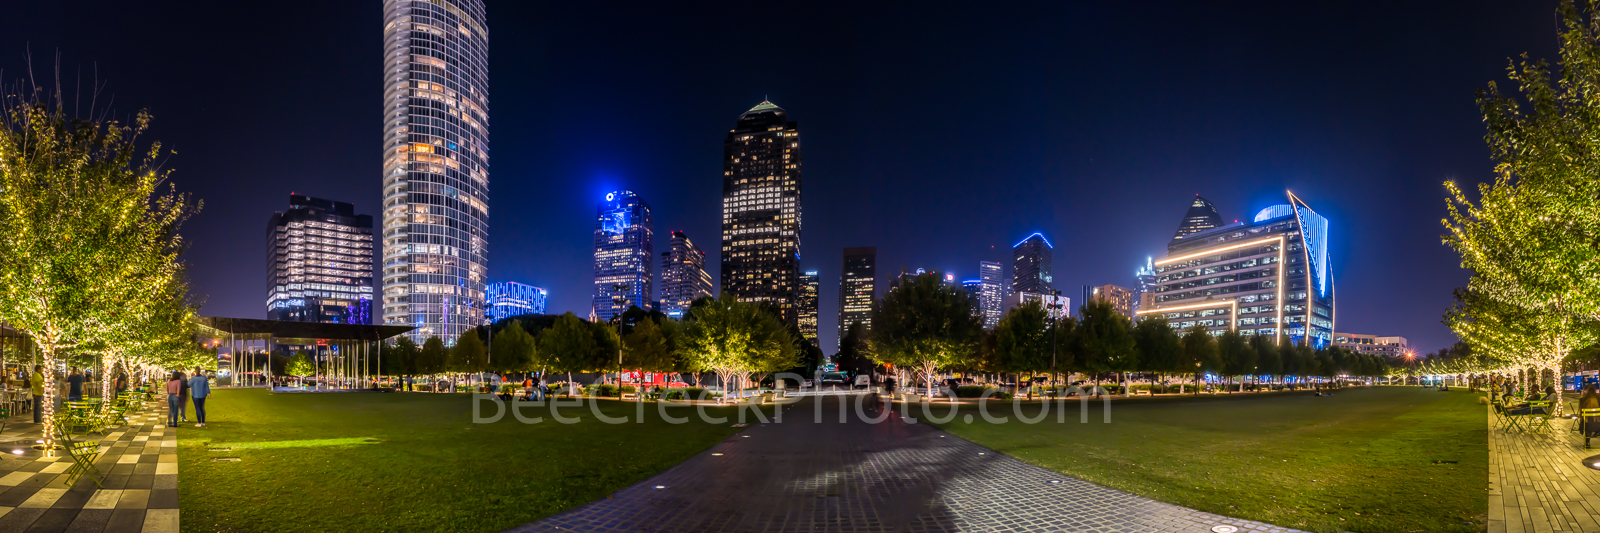 Dallas skyline, Klyde Warren Park skyline, night, panorama, pano, trees lighted, art district, Woodall Rodgers freeway, cityscape, skyscrapers, Chase Tower, Hunt Oil Building, children play area, dog